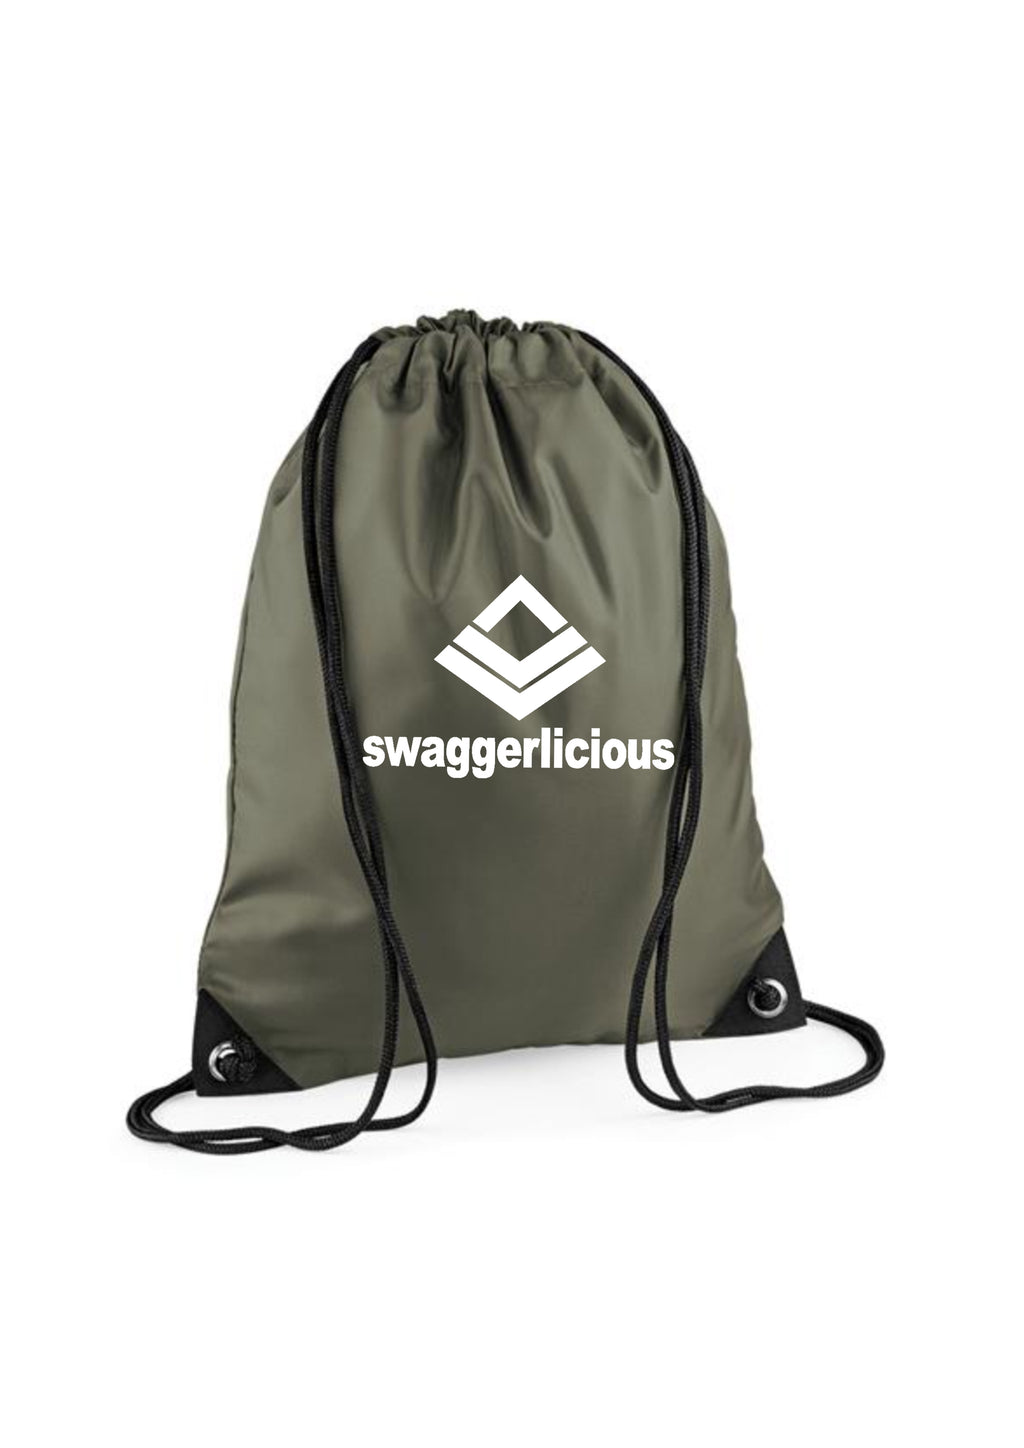 OLIVE SWAGGERLICIOUS GYM SACK - swaggerlicious-clothing.com